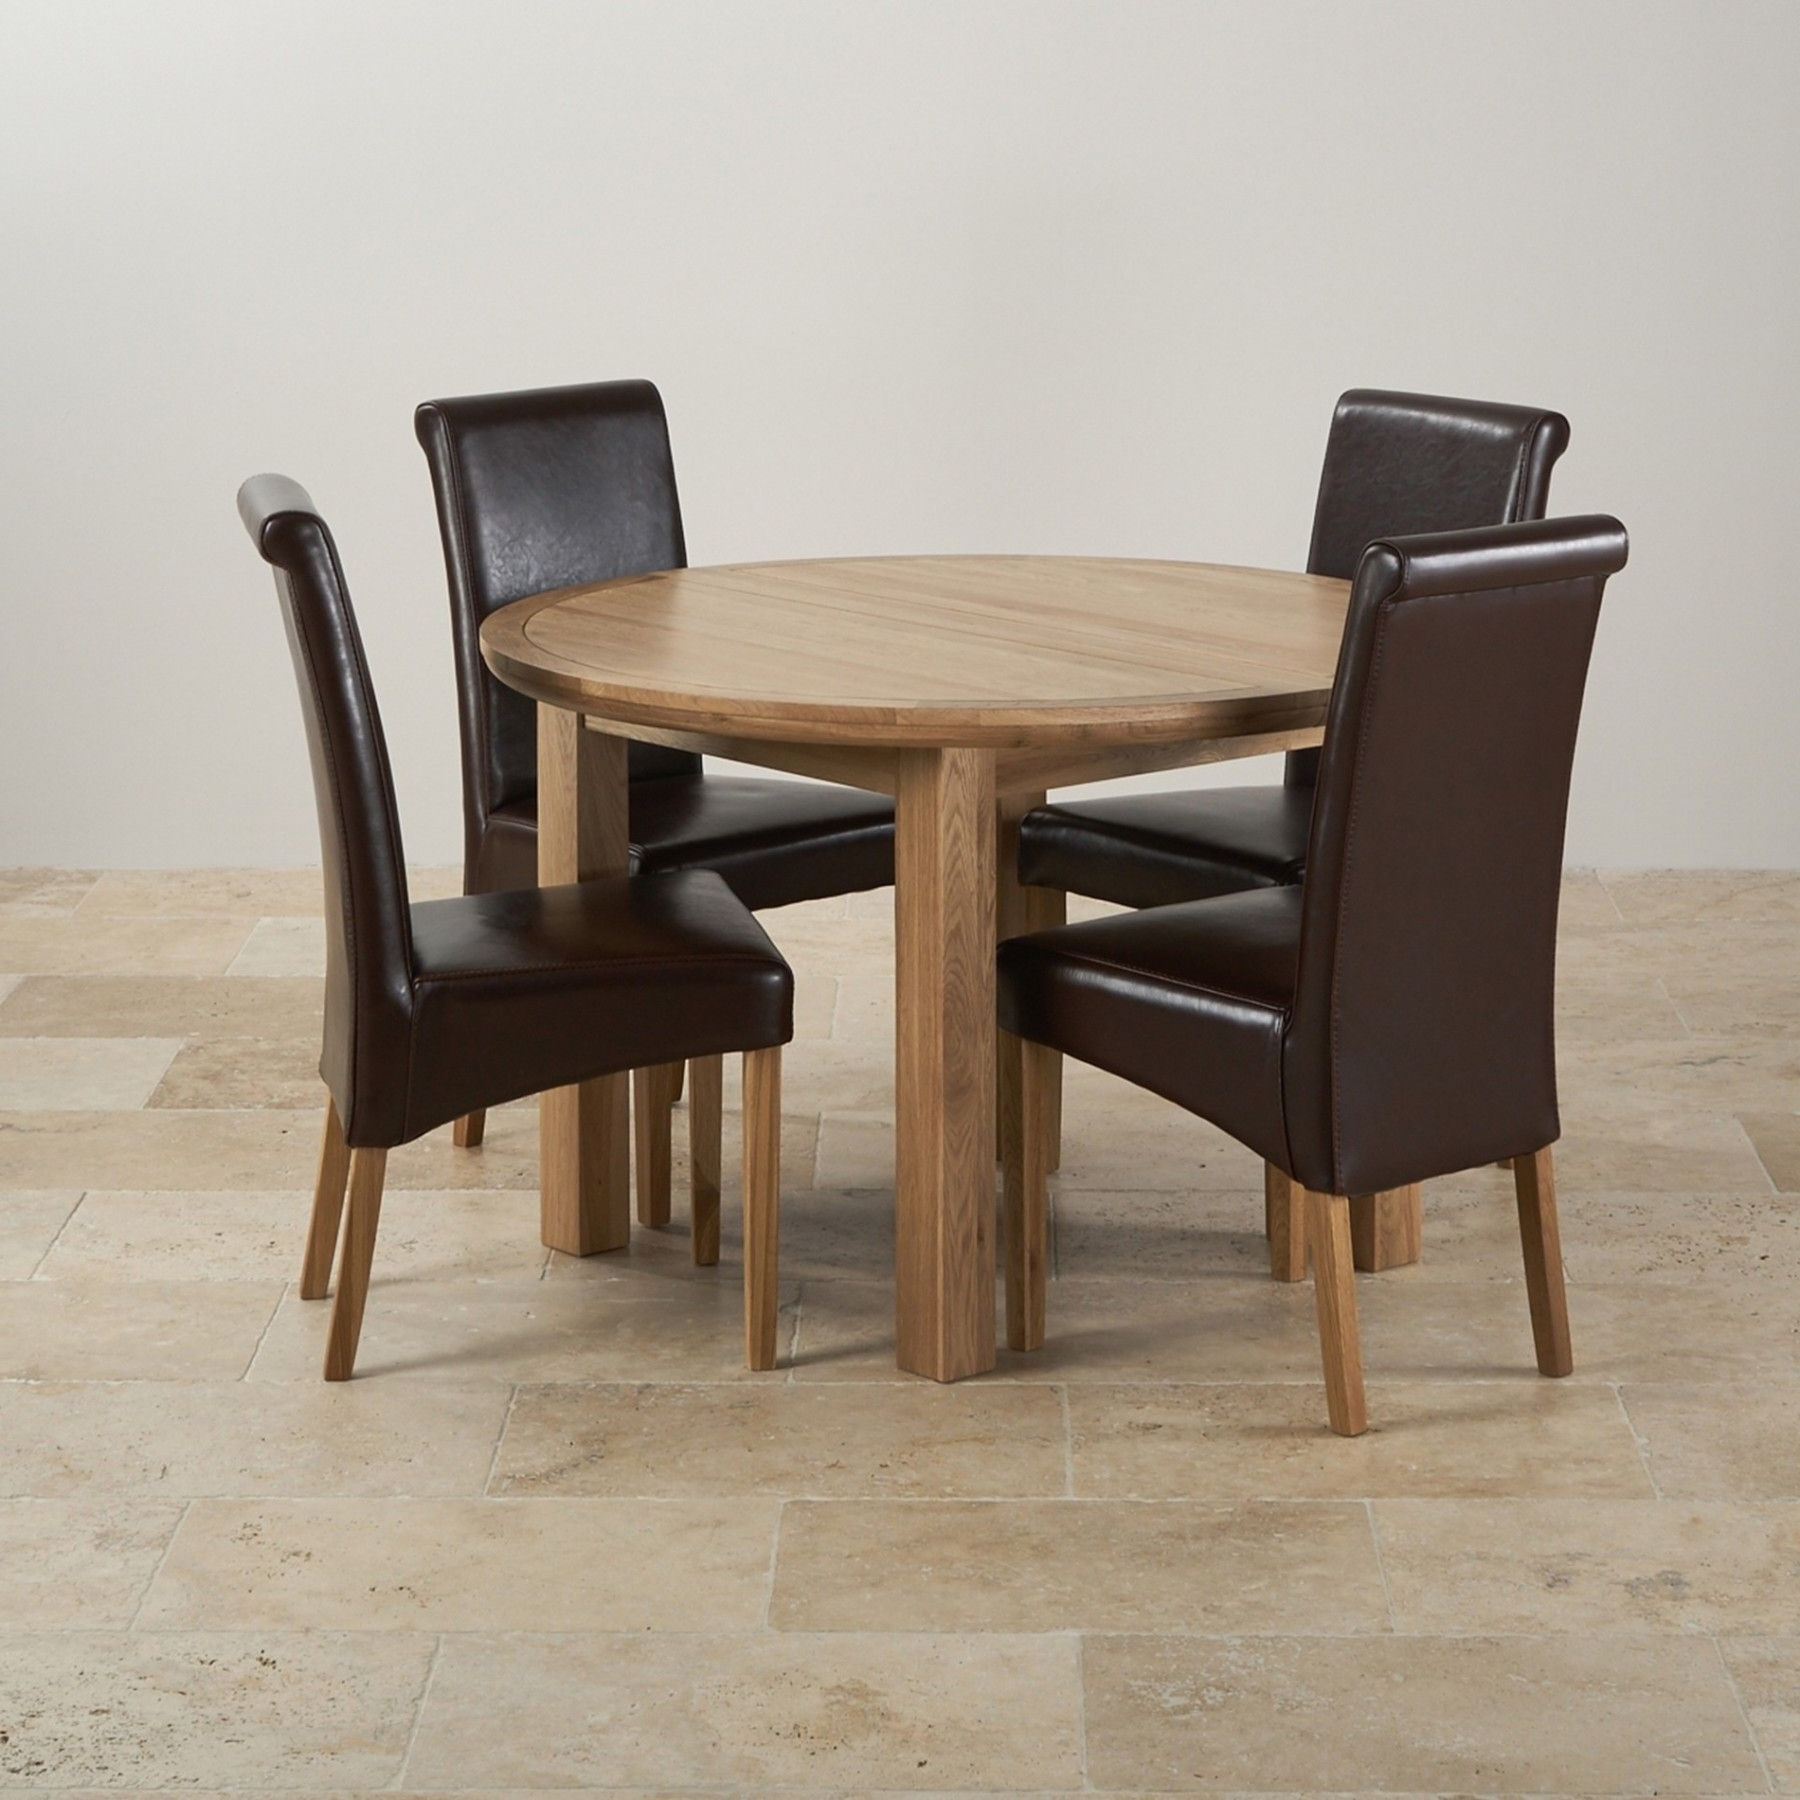 Most Popular Round Extending Oak Dining Tables And Chairs Regarding The Knightbridge Solid Oak Round Extending Dining Table Is Ideal For (View 3 of 25)